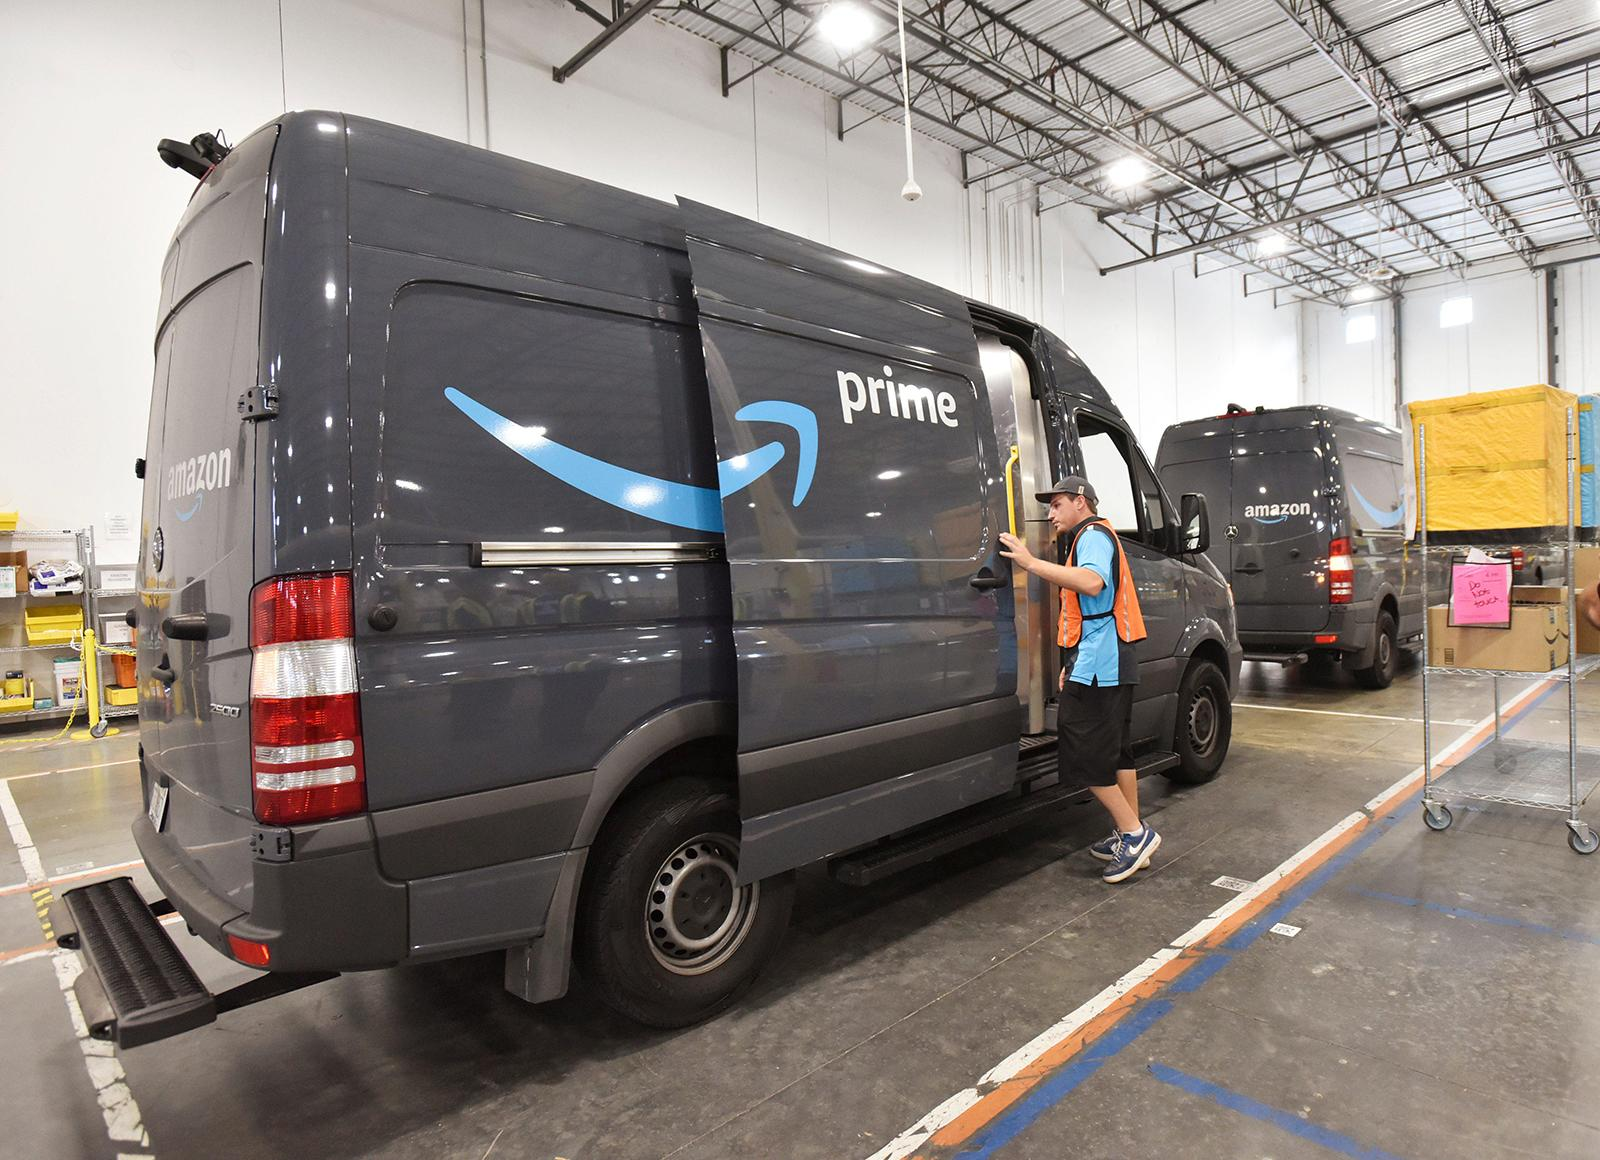 Amazon Prime Day helped some get started on holiday shopping. Here's what they bought